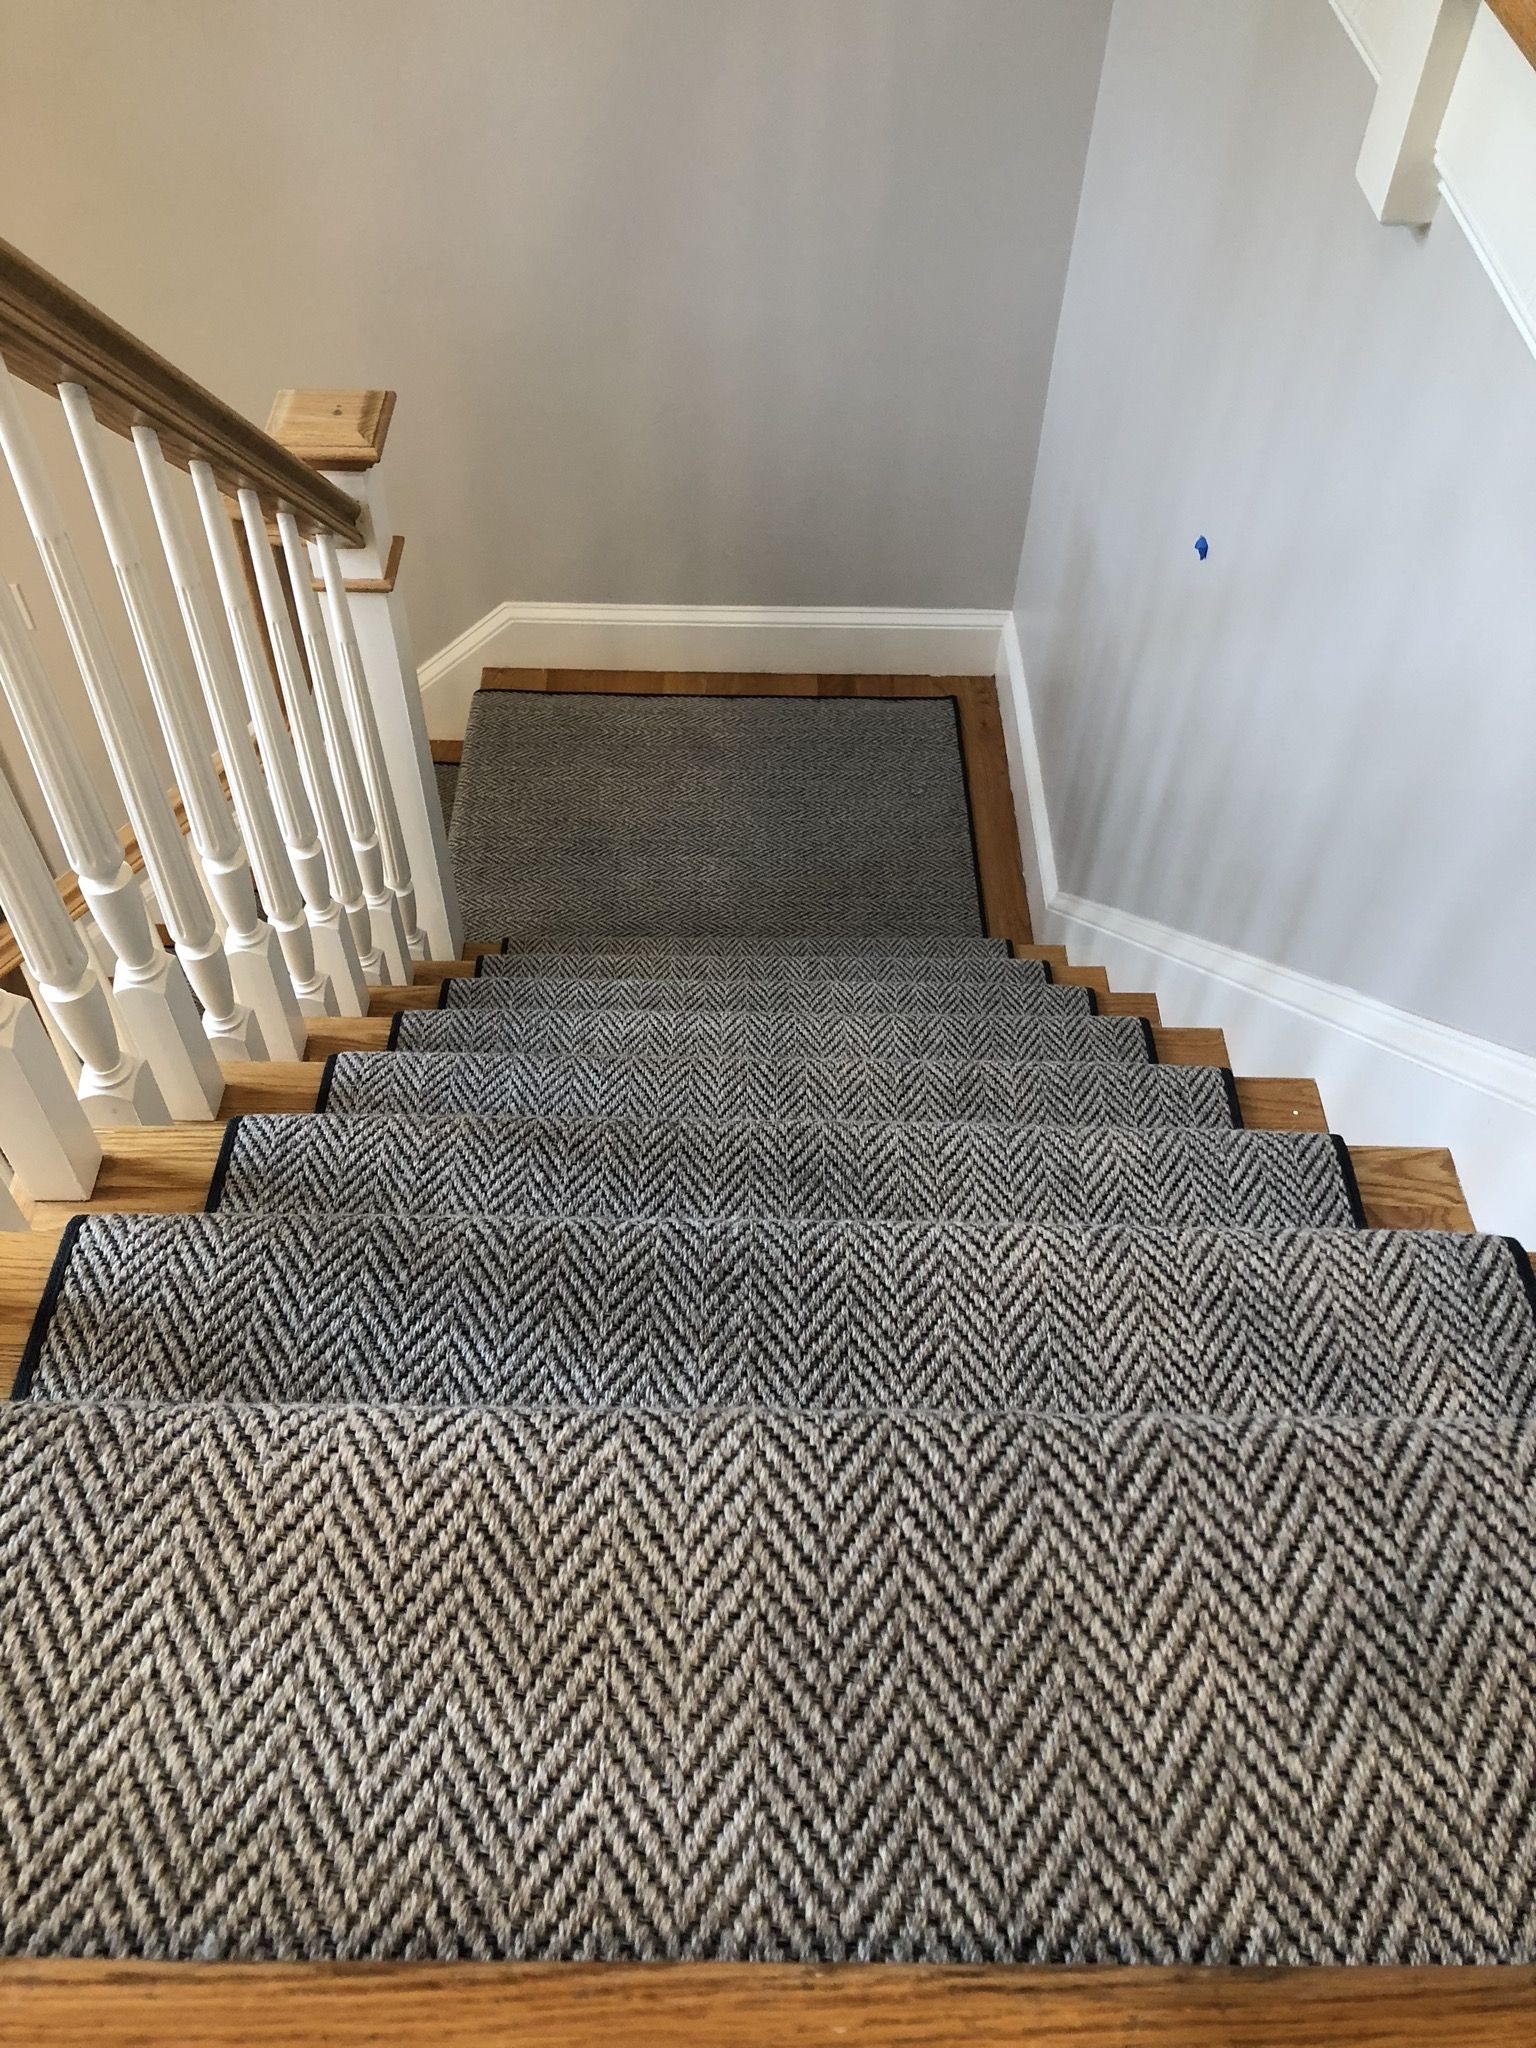 The Best Way To Do Herringbone Runners Heatherly By Momeni The Most Flexible In Style With Multiple Colors And Stair Runner Stair Runner Carpet Carpet Stairs